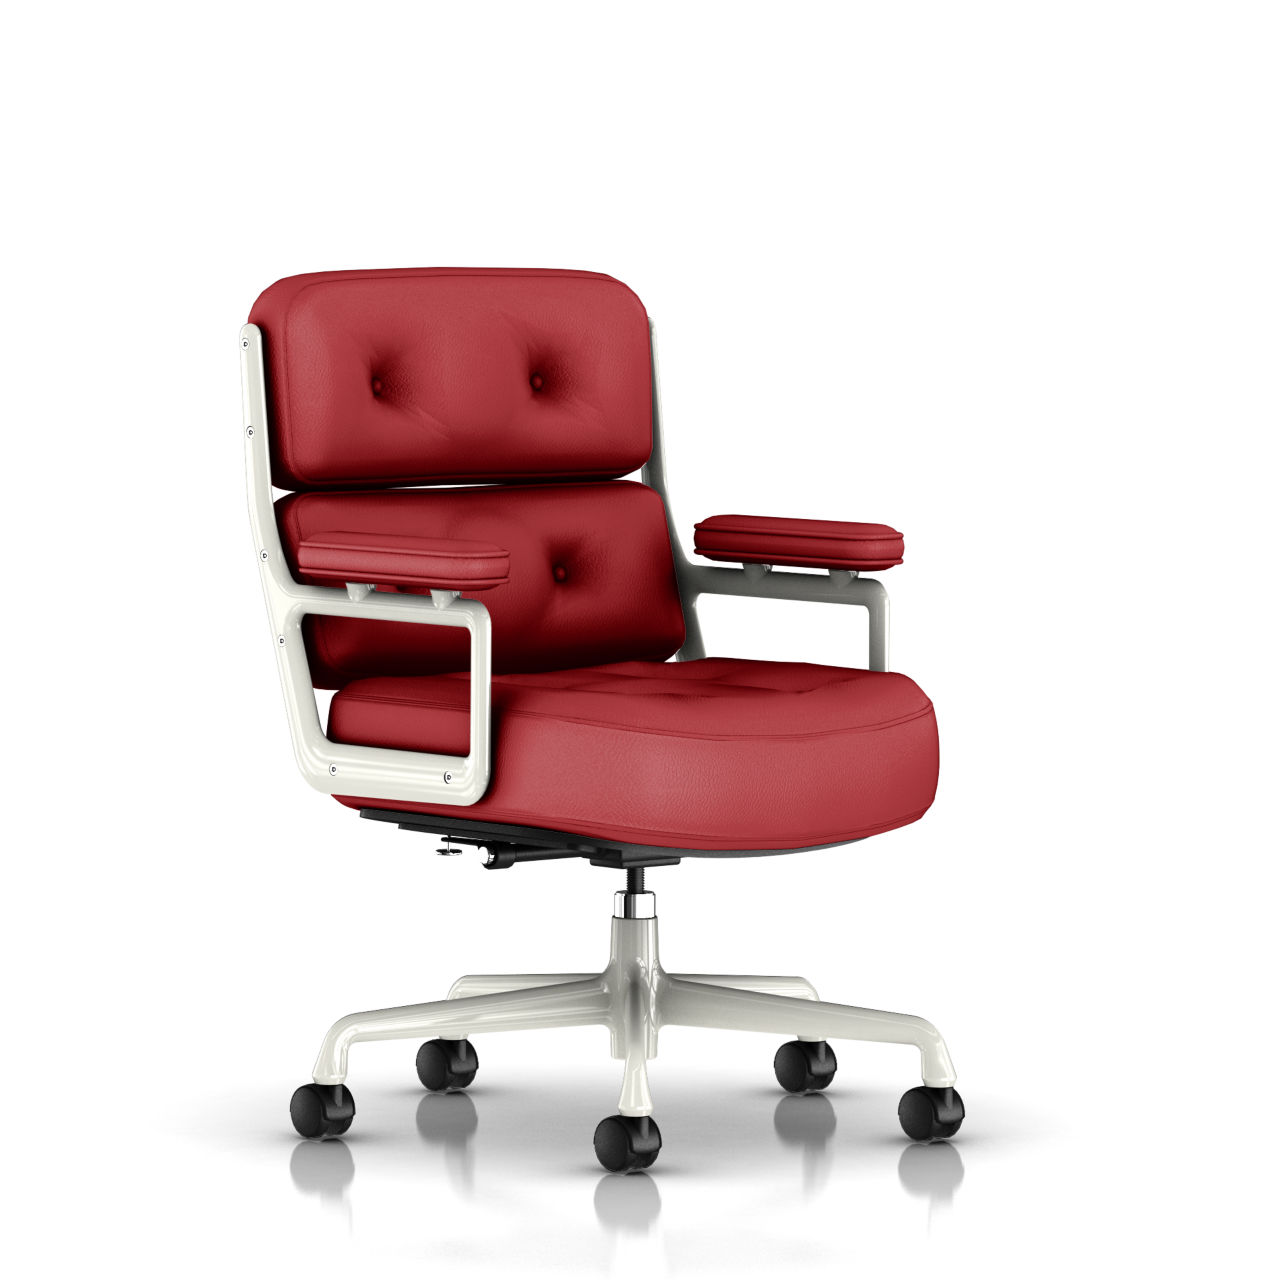 Eames Executive Work Chair in Cranberry Leather by Herman Miller